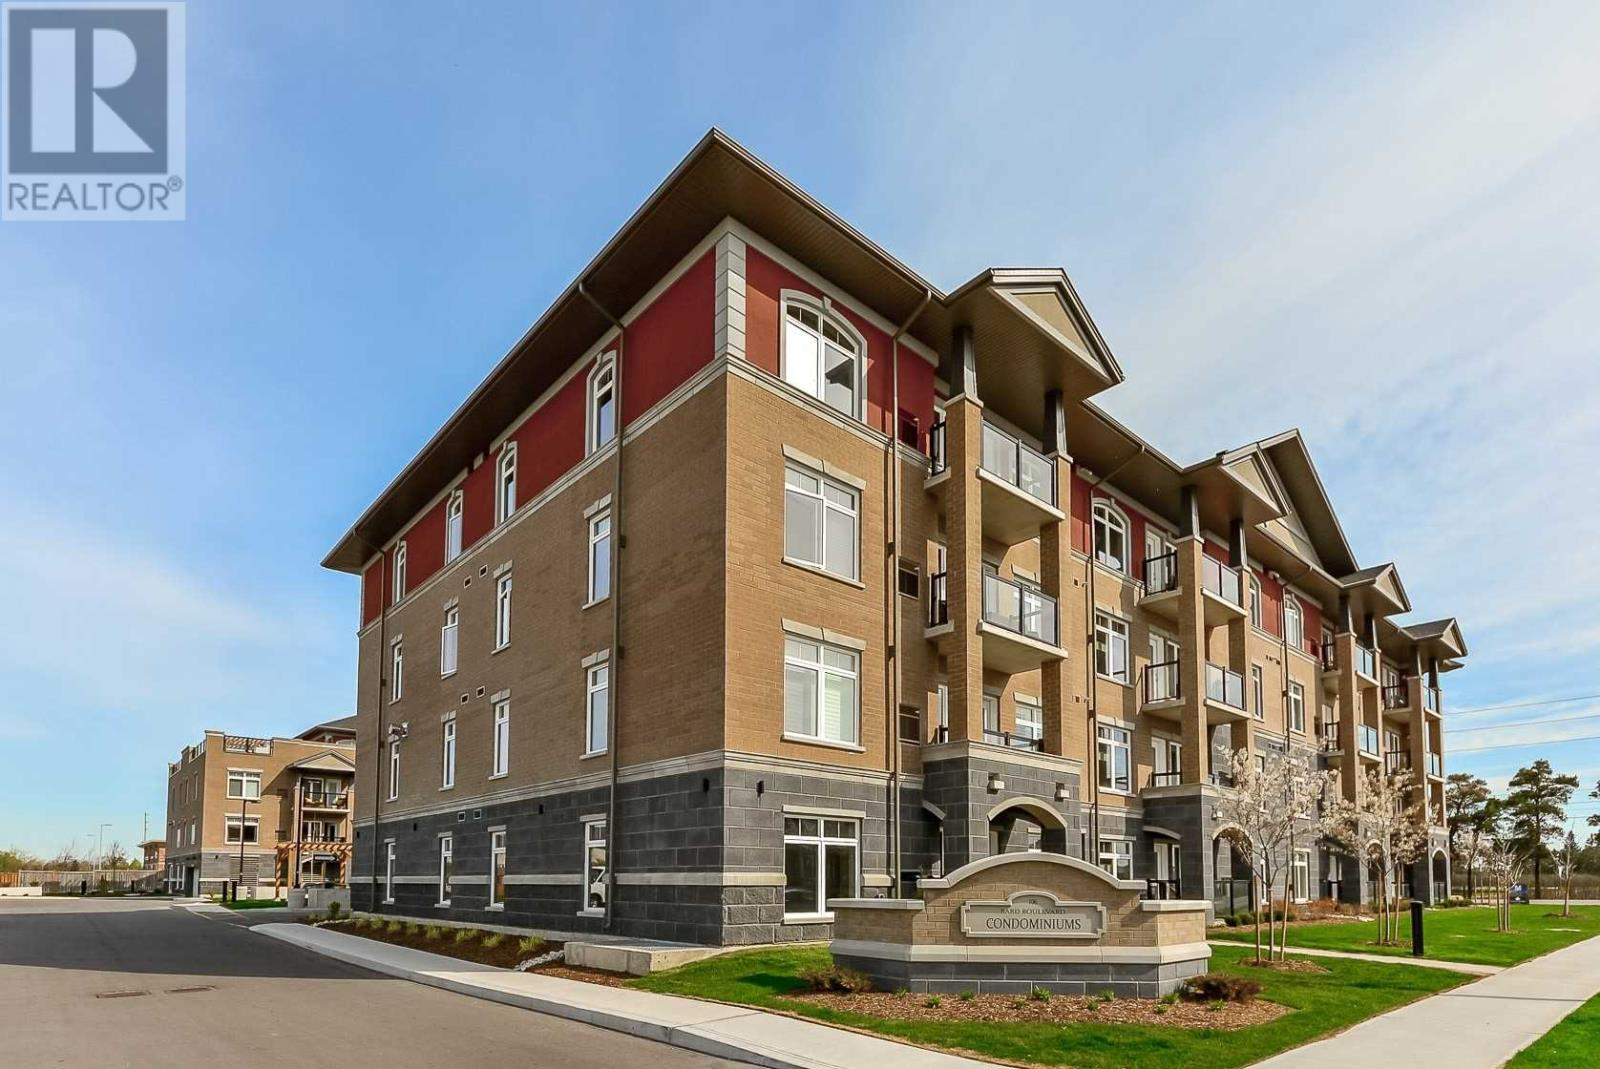 #111 -106 BARD BLVD, Guelph, Ontario, Canada N1L0L8, 2 Bedrooms Bedrooms, Register to View ,2 BathroomsBathrooms,Condo,For Sale,Bard,X5200482